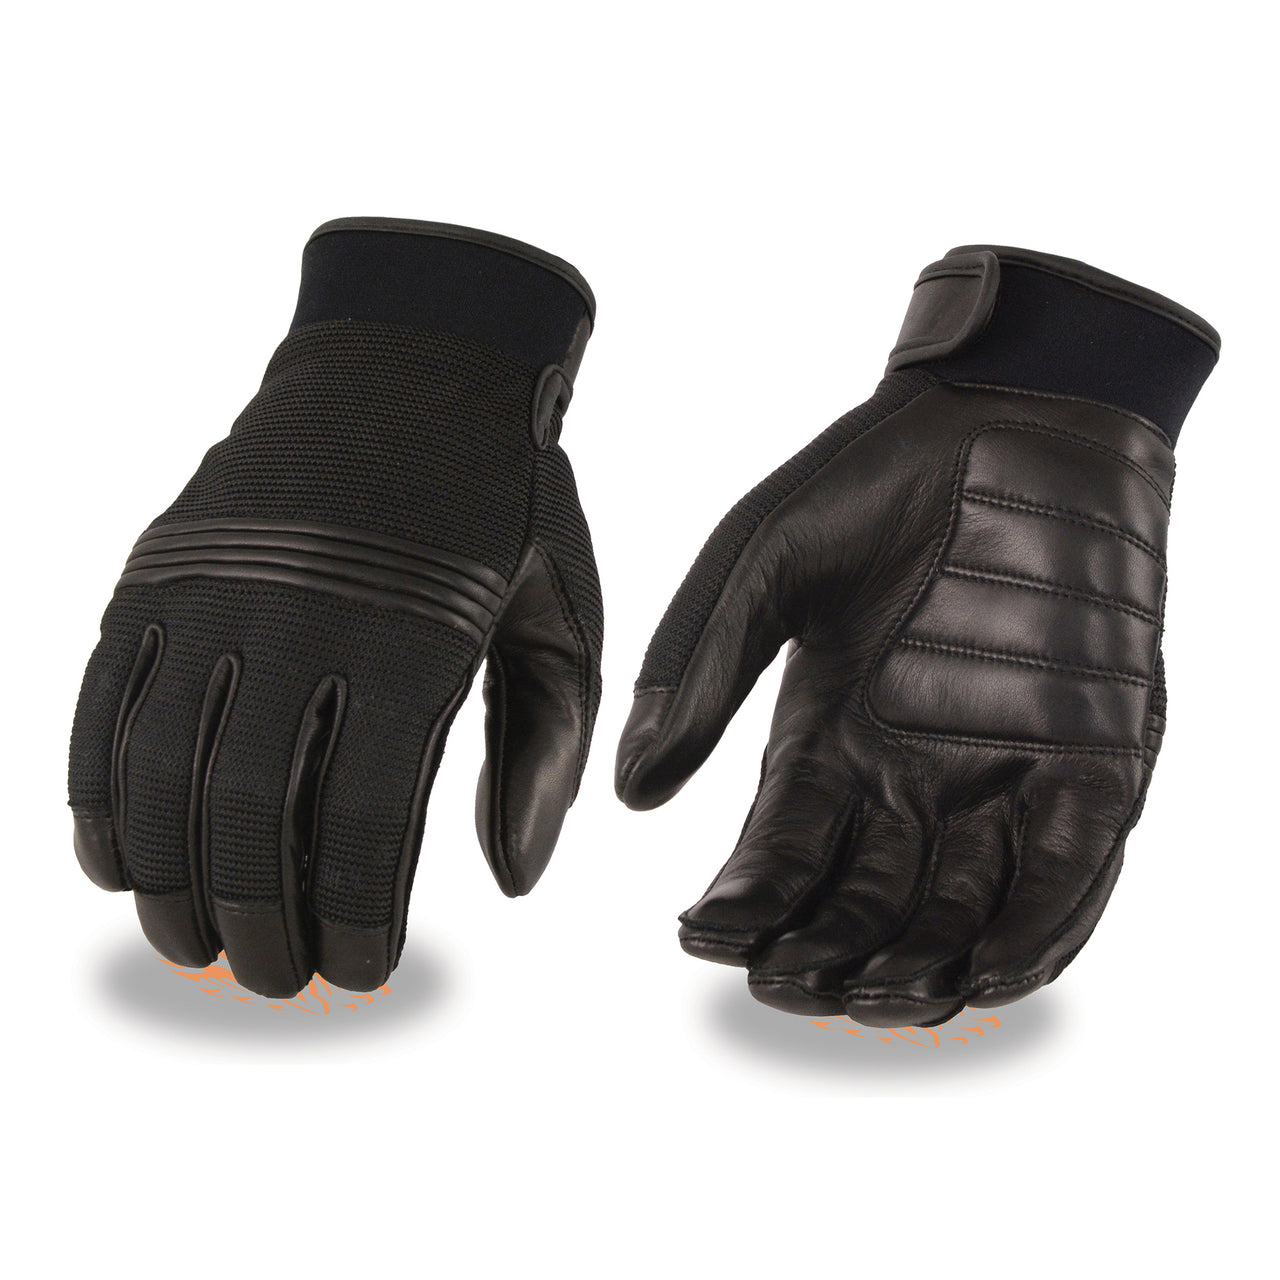 Men's Leather/Mesh Perforated Glove w/ Gel Palm & Flex Knuckles - HighwayLeather